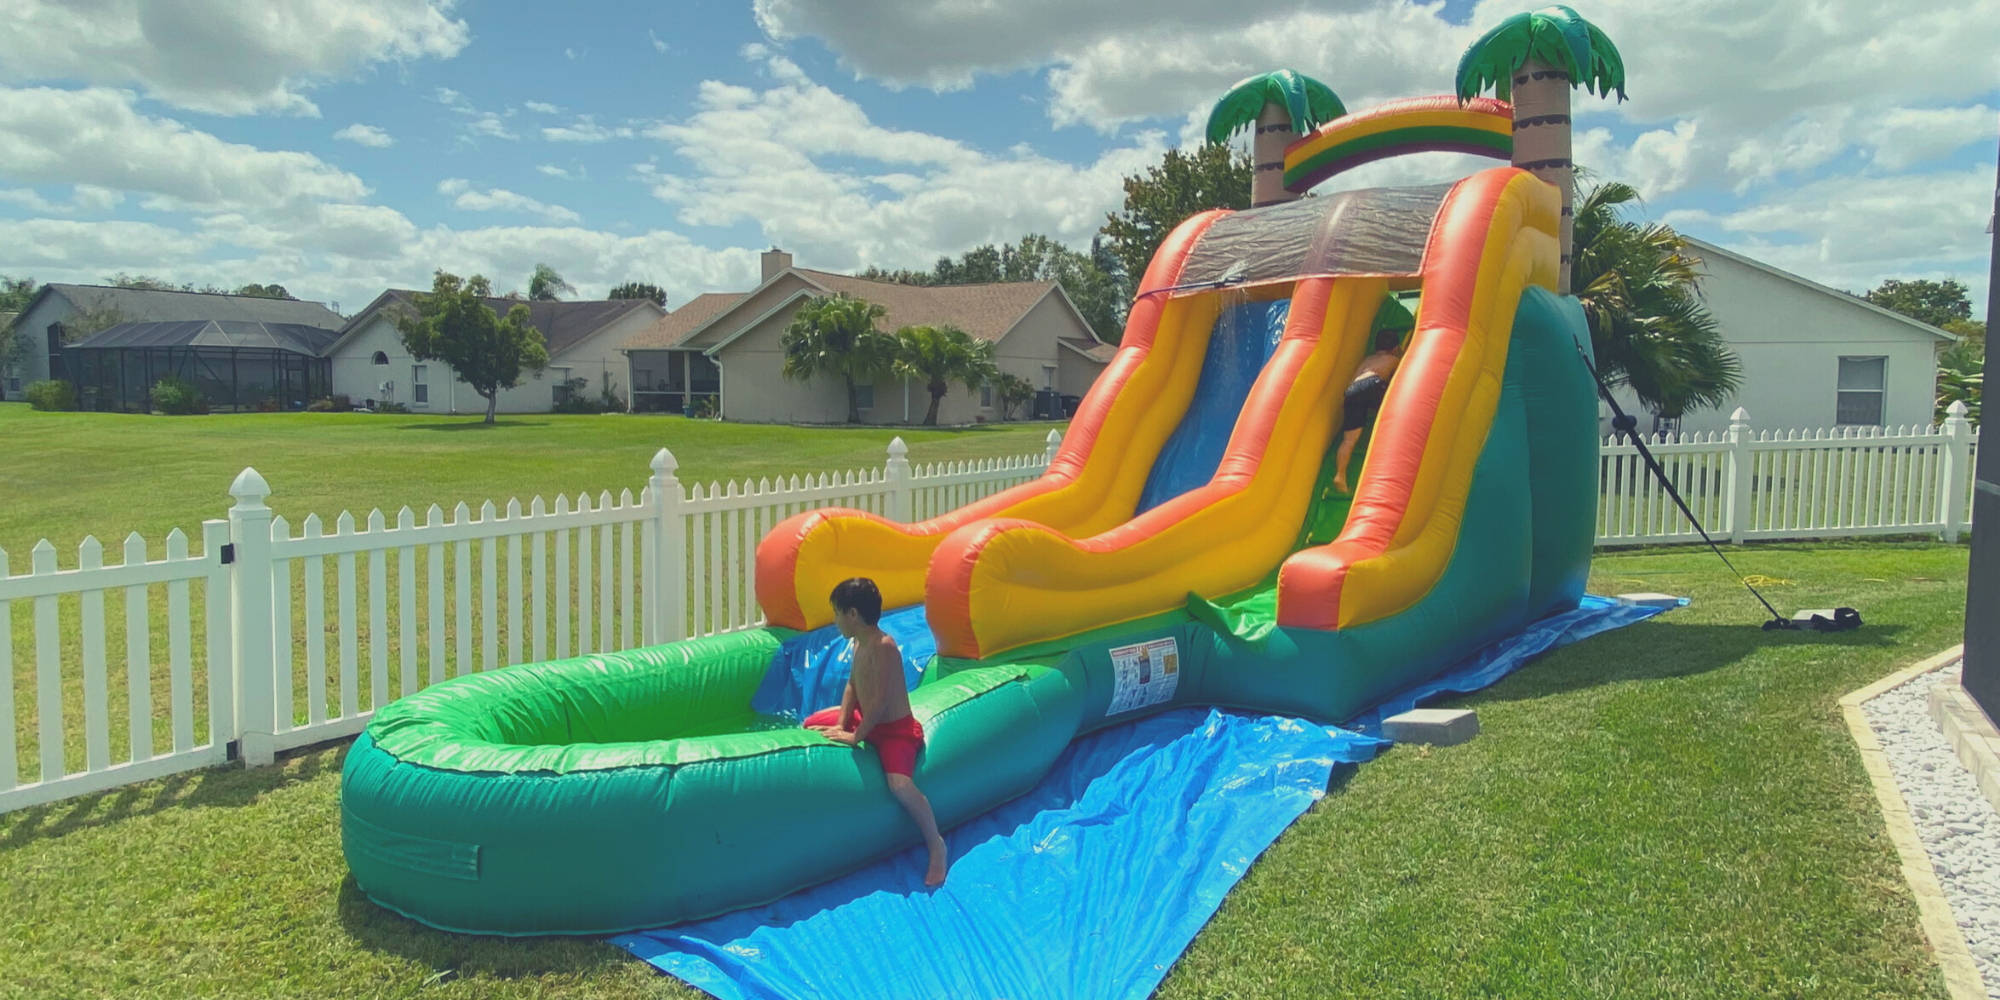 Children playing in the 15 feet tropical water slide